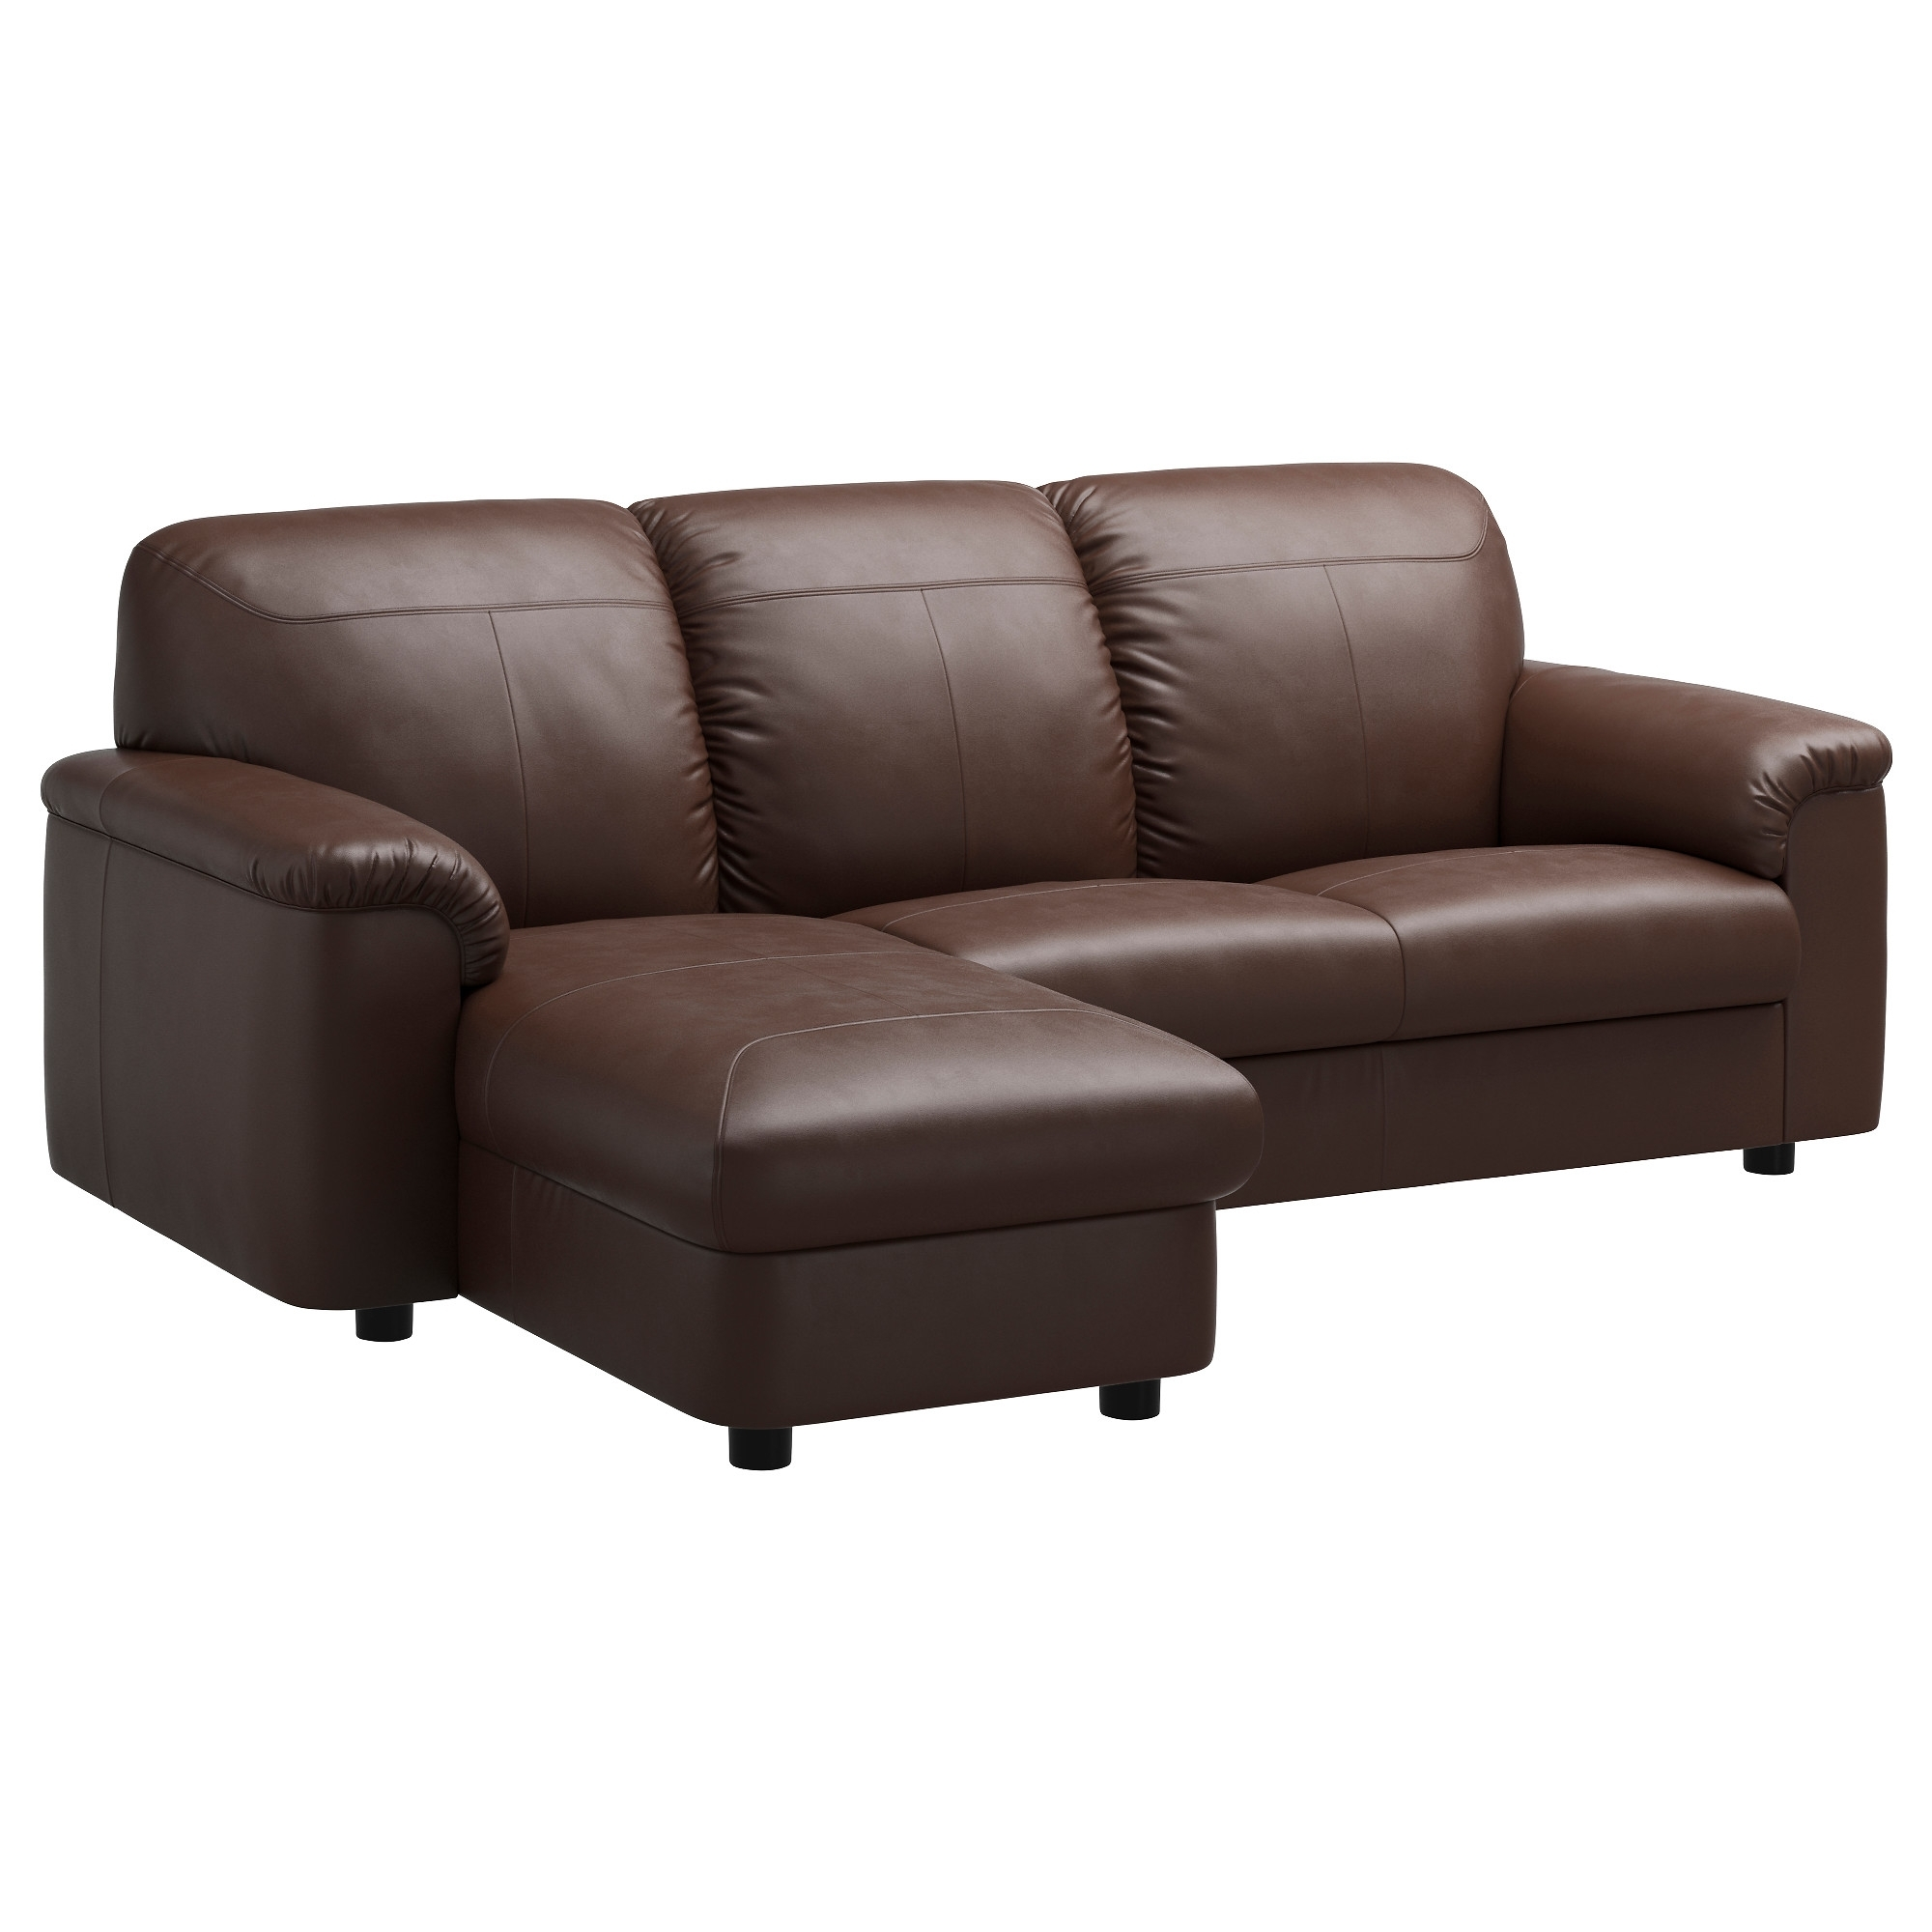 Most Recent Ikea Two Seater Sofas For Timsfors Sectional, 3 Seat – Mjuk/kimstad Dark Brown – Ikea (View 18 of 20)